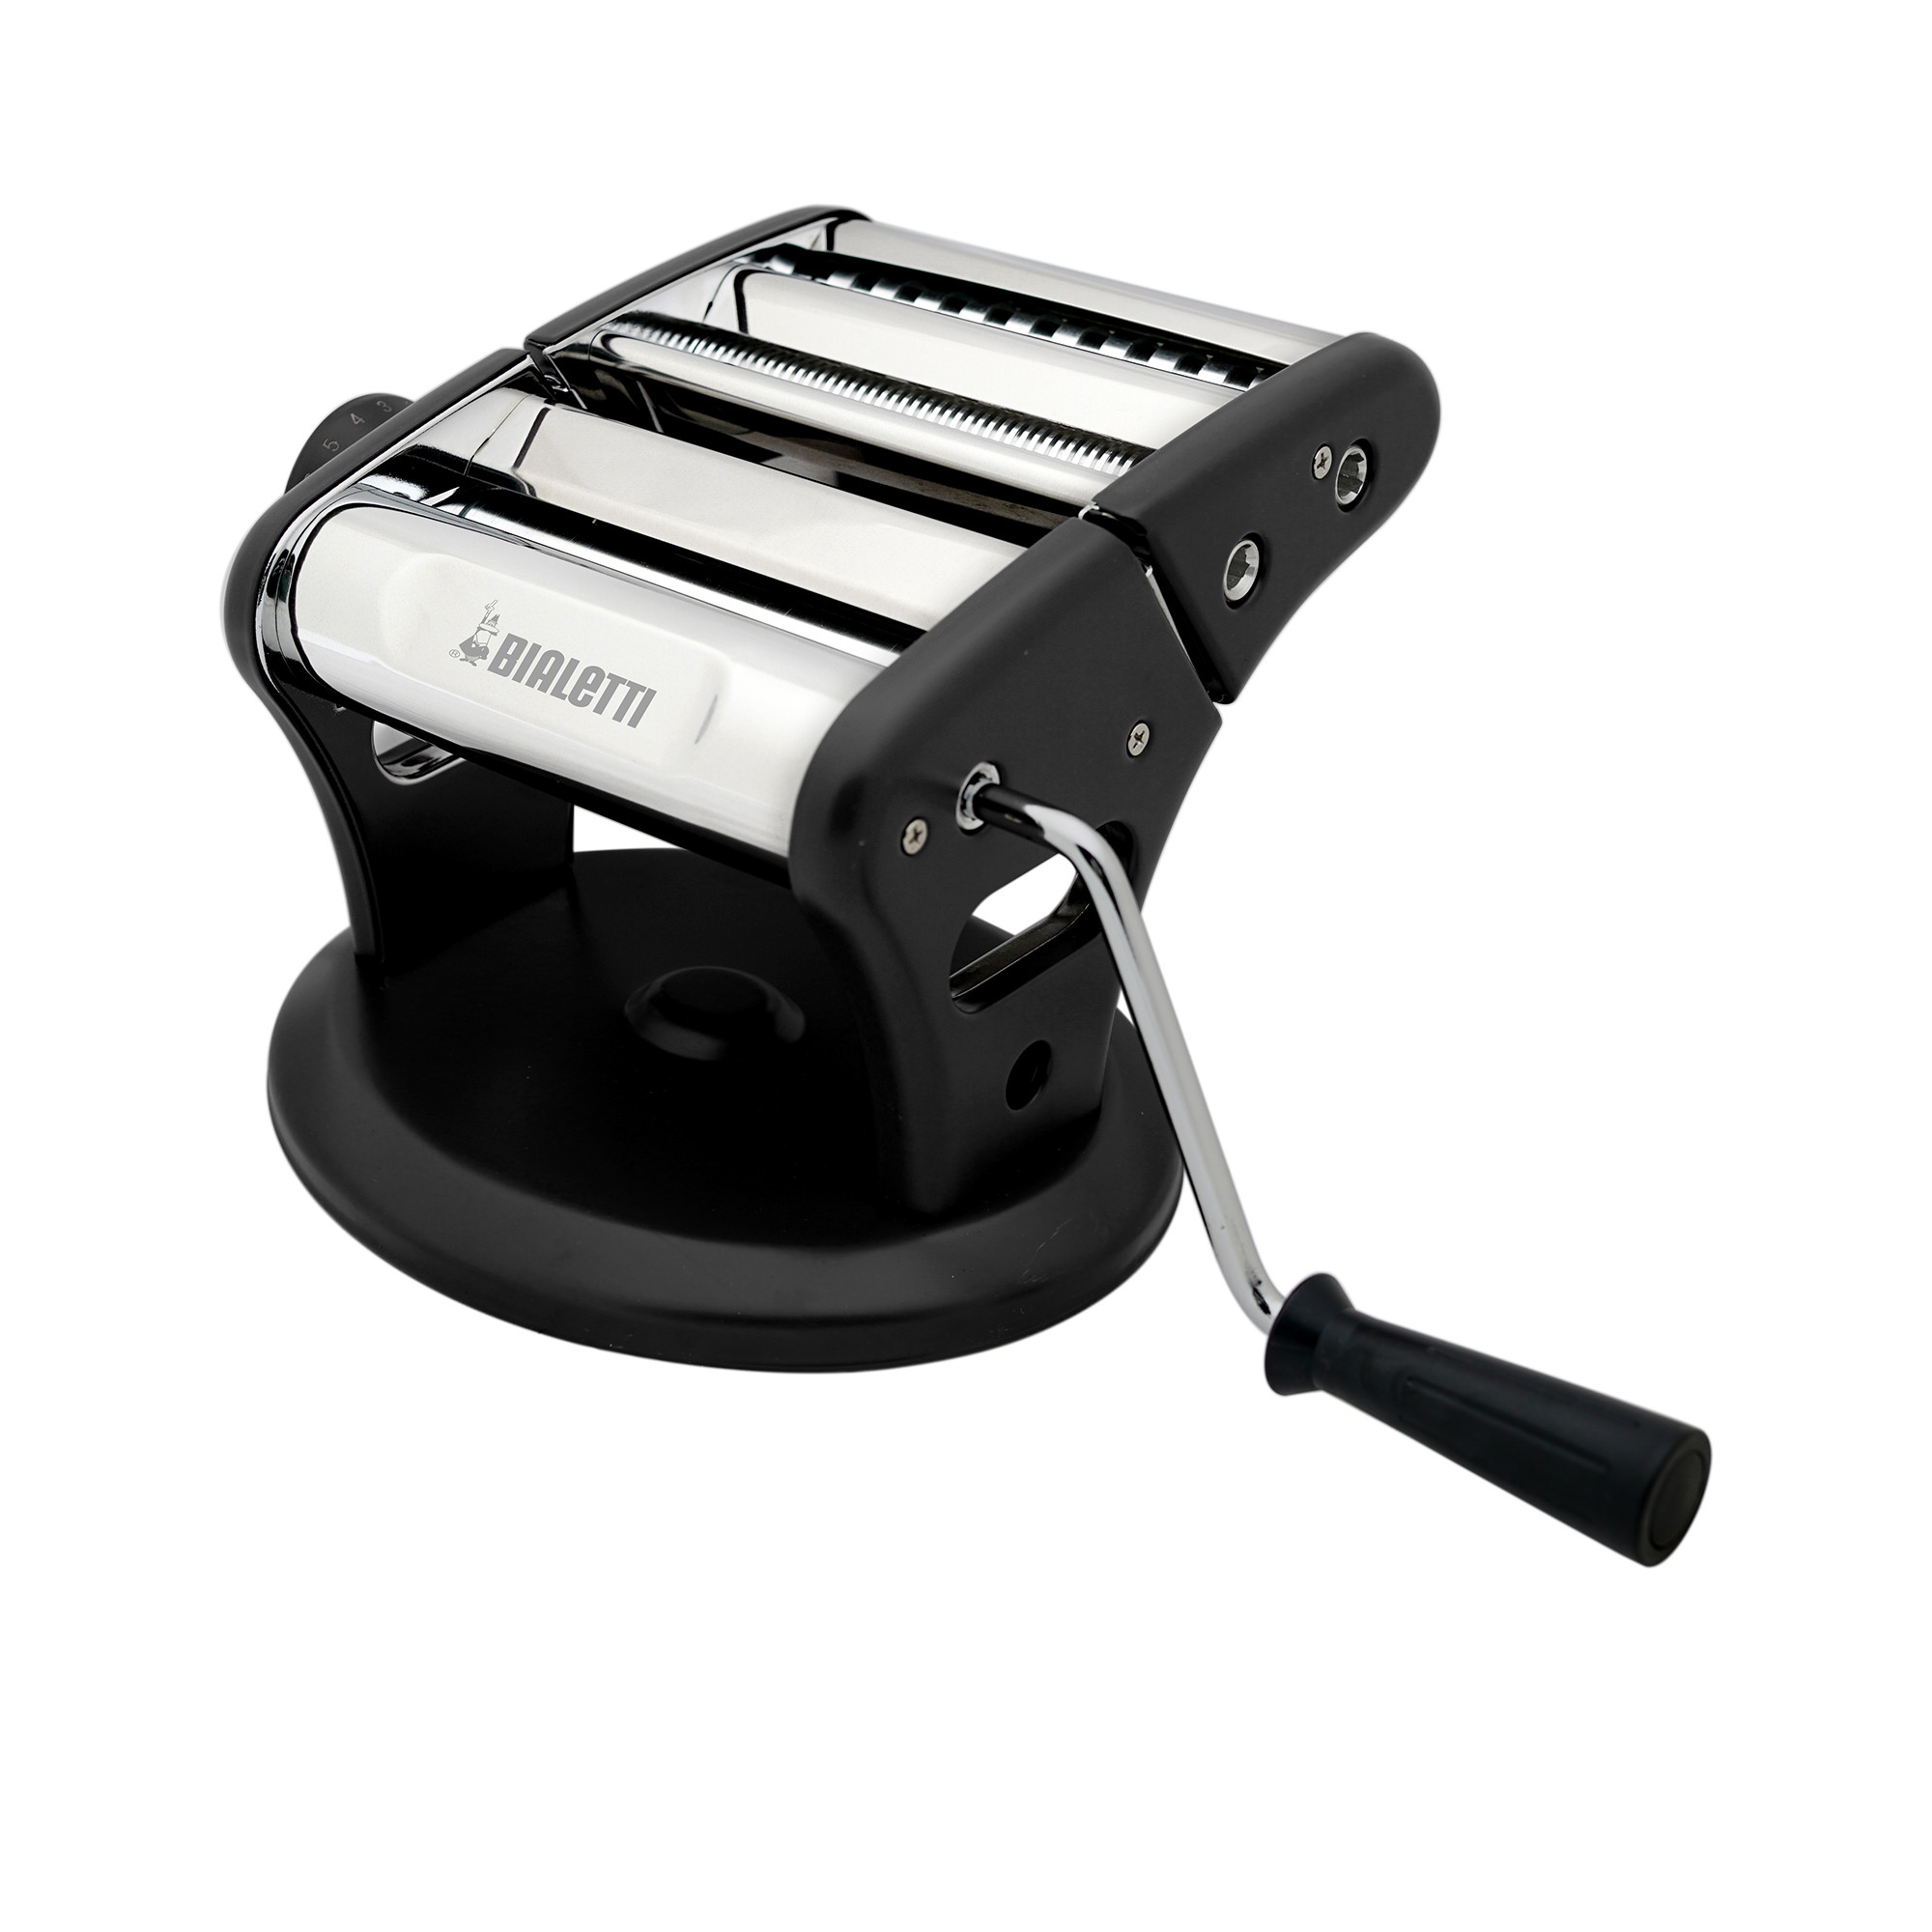 Bialetti Pasta Machine Matte Black